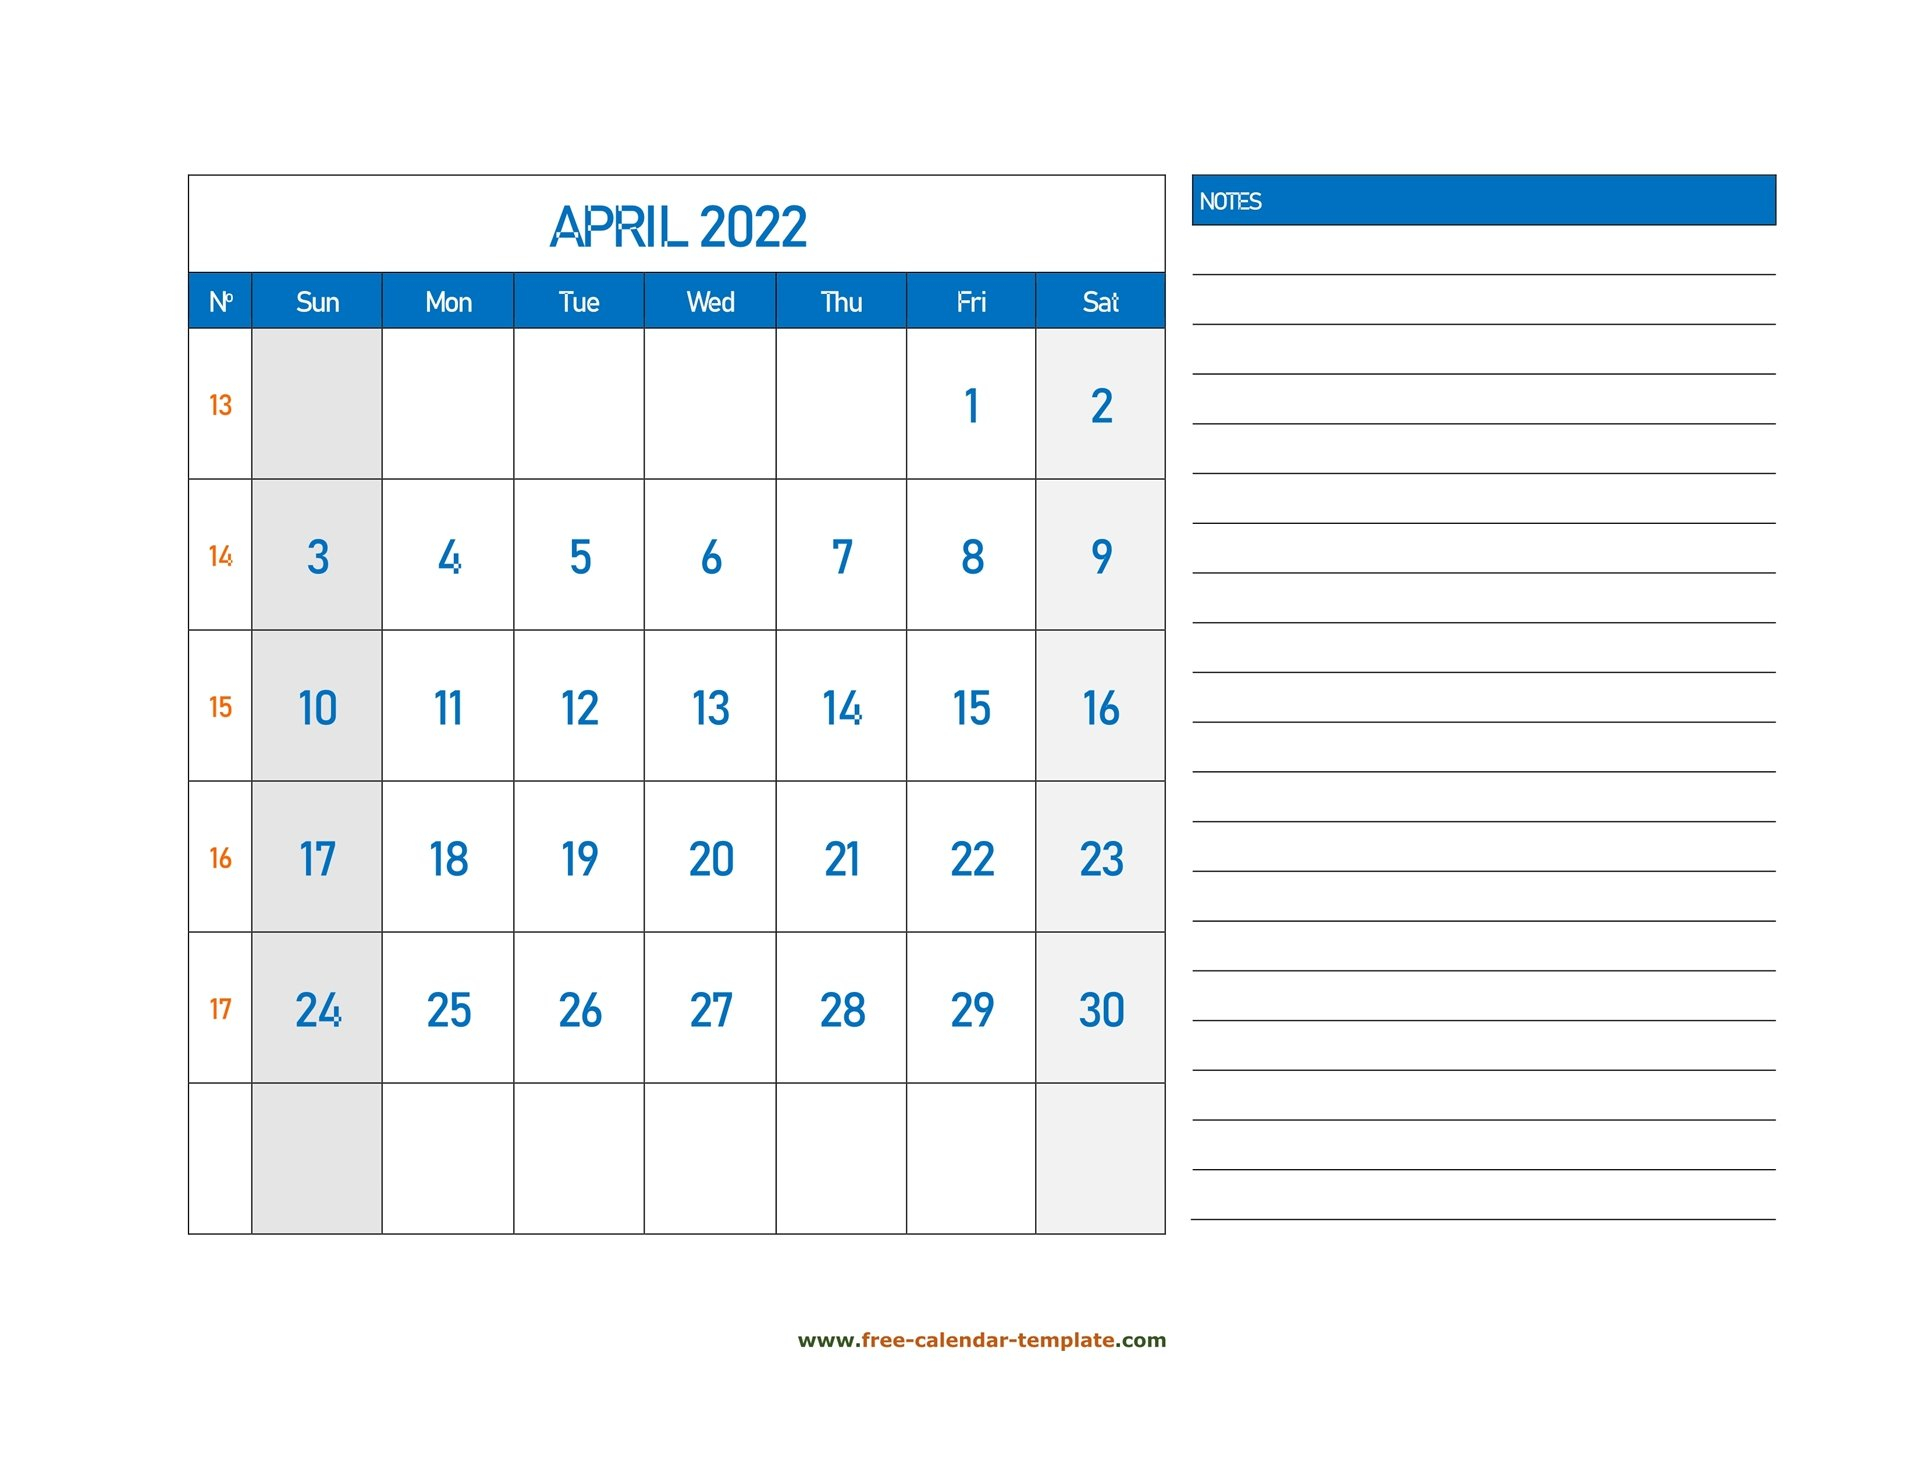 April Calendar 2022 Grid Lines For Holidays And Notes with Printable Monthly Calendar April 2022 Graphics